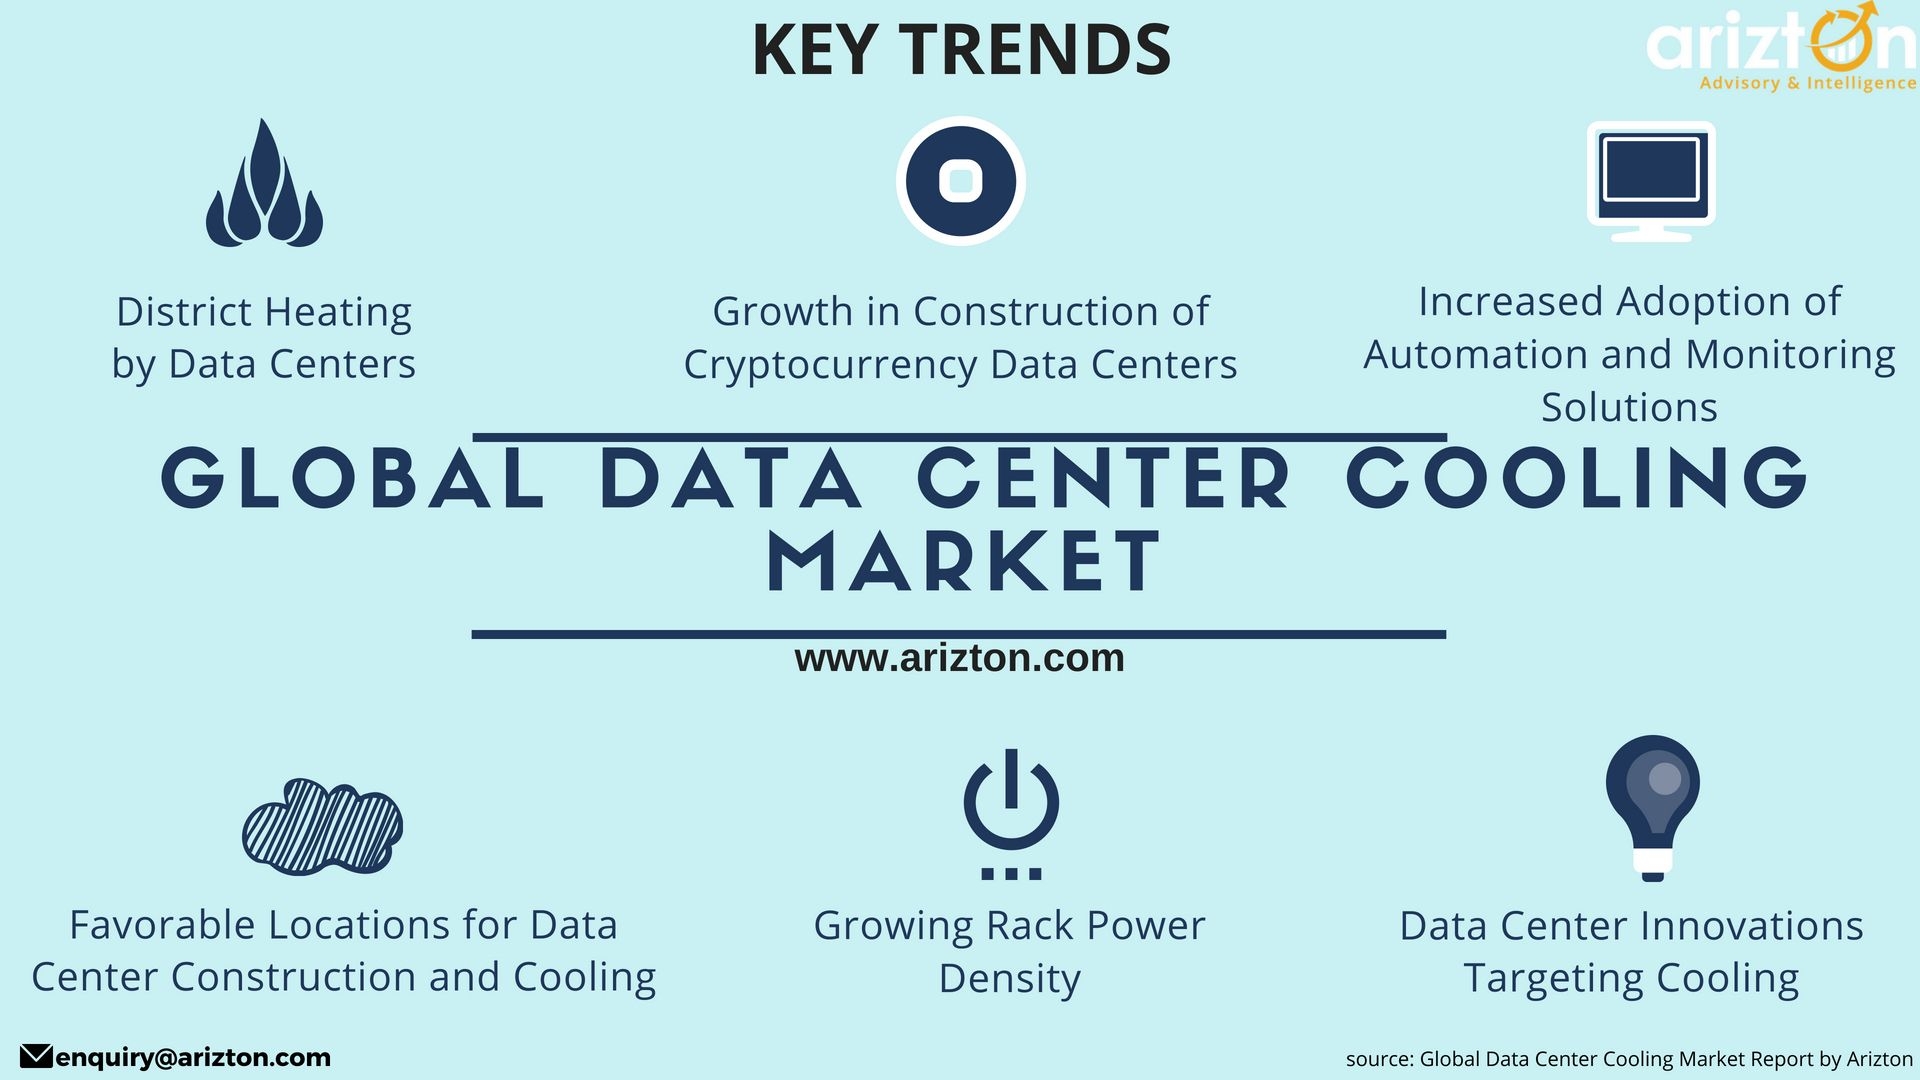 Top Trends Driving The Global Data Center Cooling Market 2023